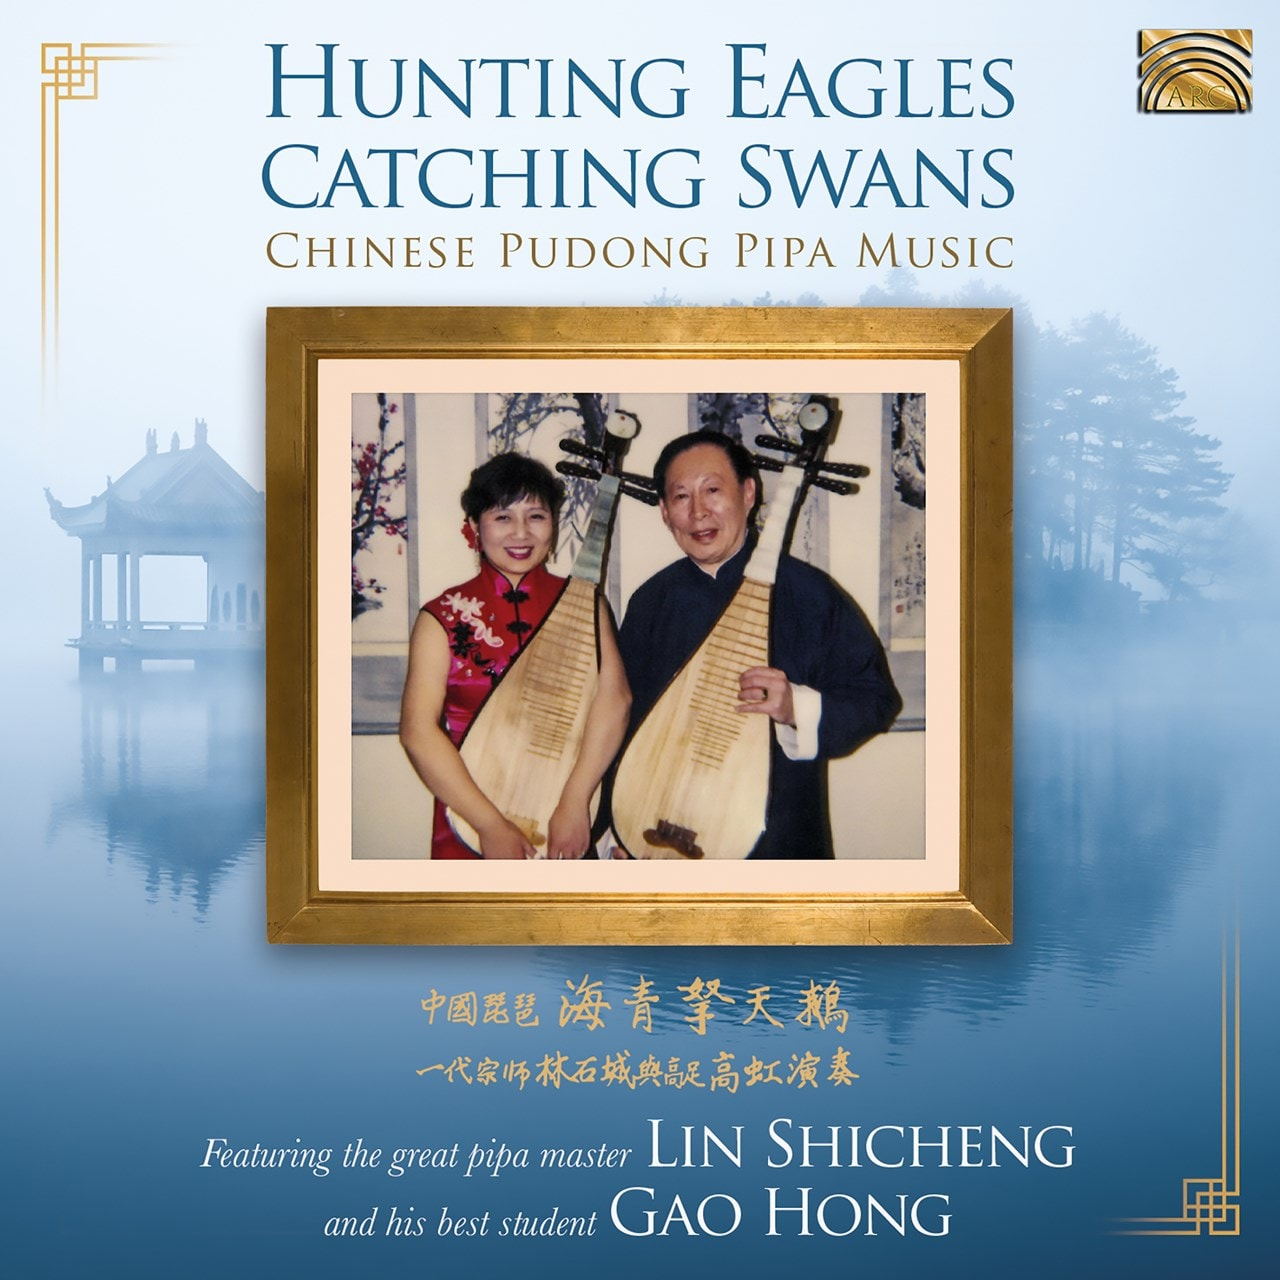 Hunting Eagles Catching Swans: Chinese Pudong Pipa Music - 1